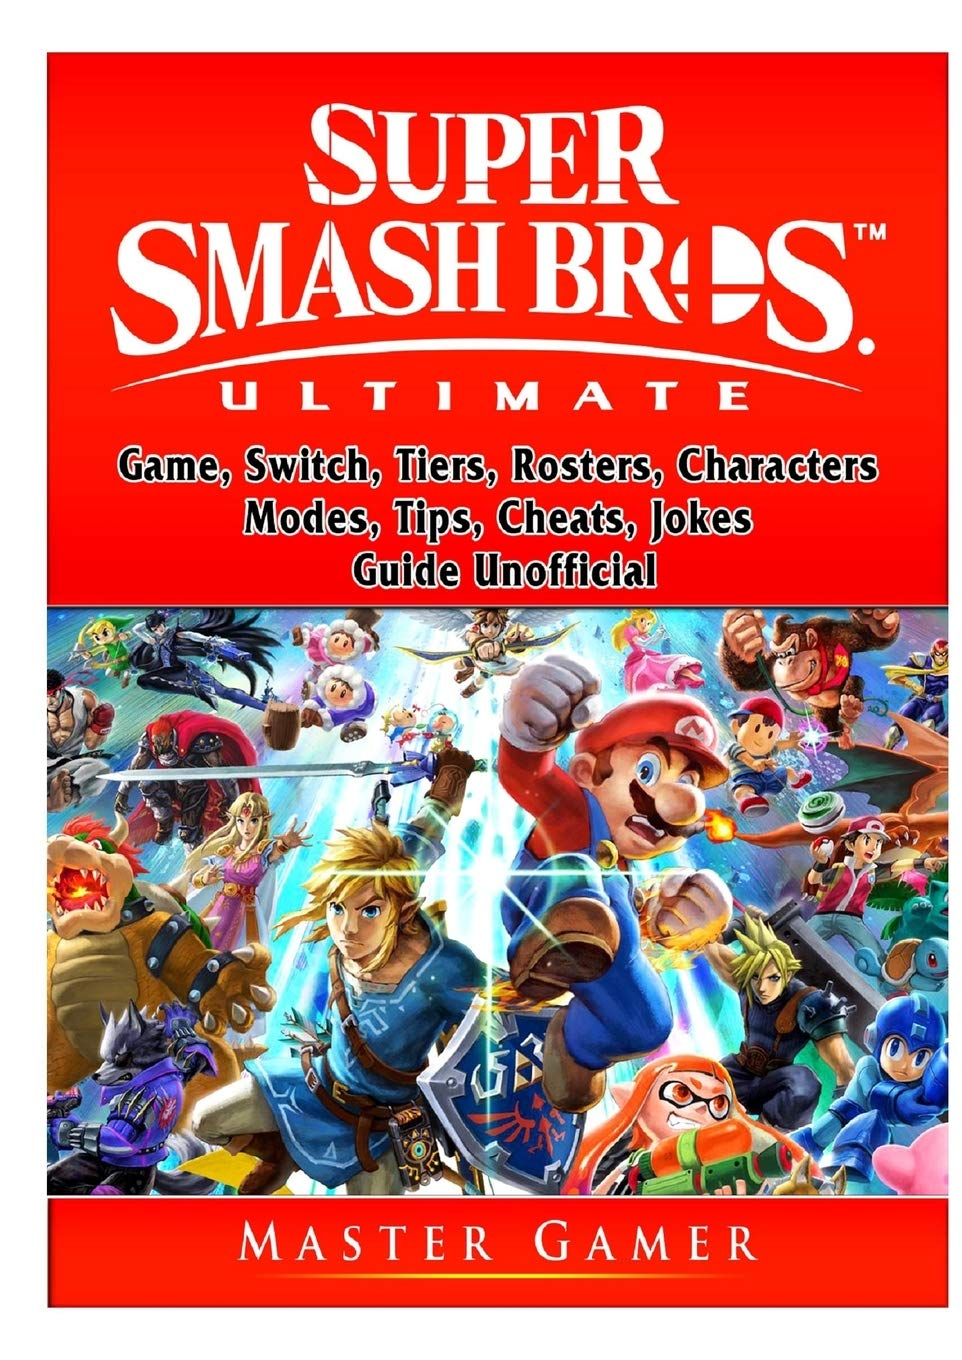 Super Smash Brothers Ultimate Game, Switch, Tiers, Rosters, Characters, Modes, Tips, Cheats, Jokes, Guide Unofficial: Amazon.es: Gamer, Master: Libros en idiomas extranjeros